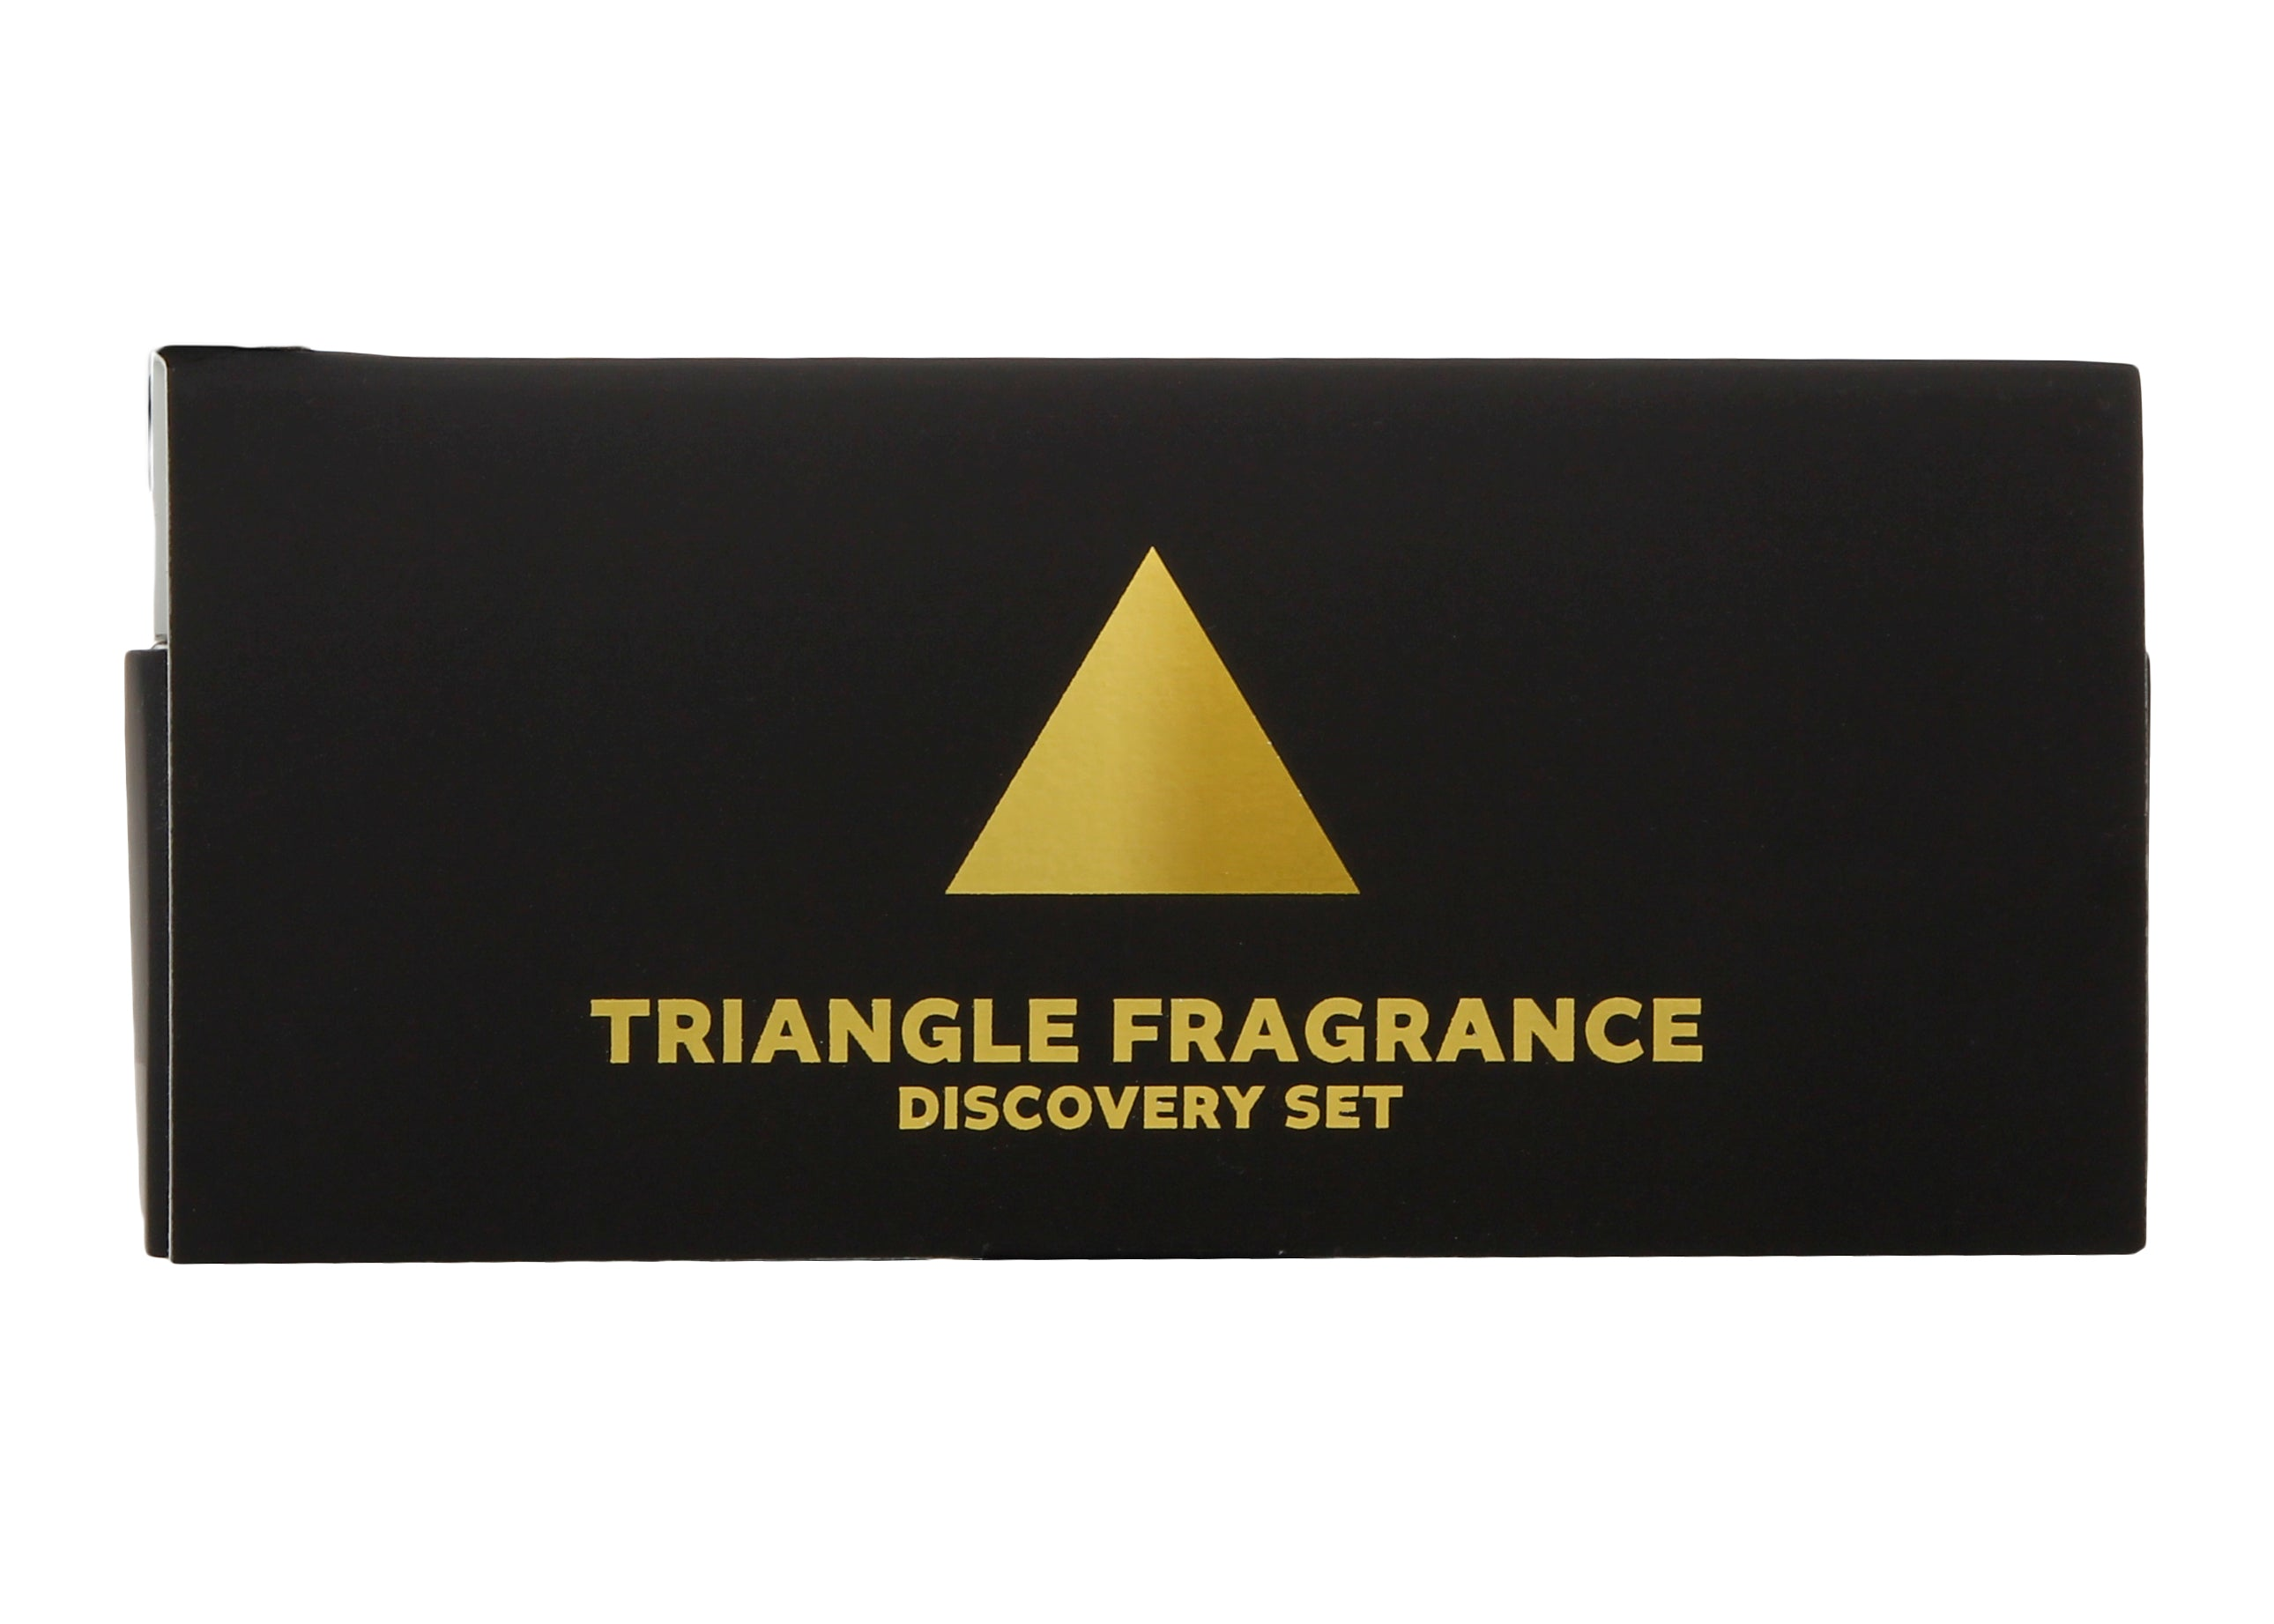 TRIANGLE FRAGRANCE DISCOVERY SET